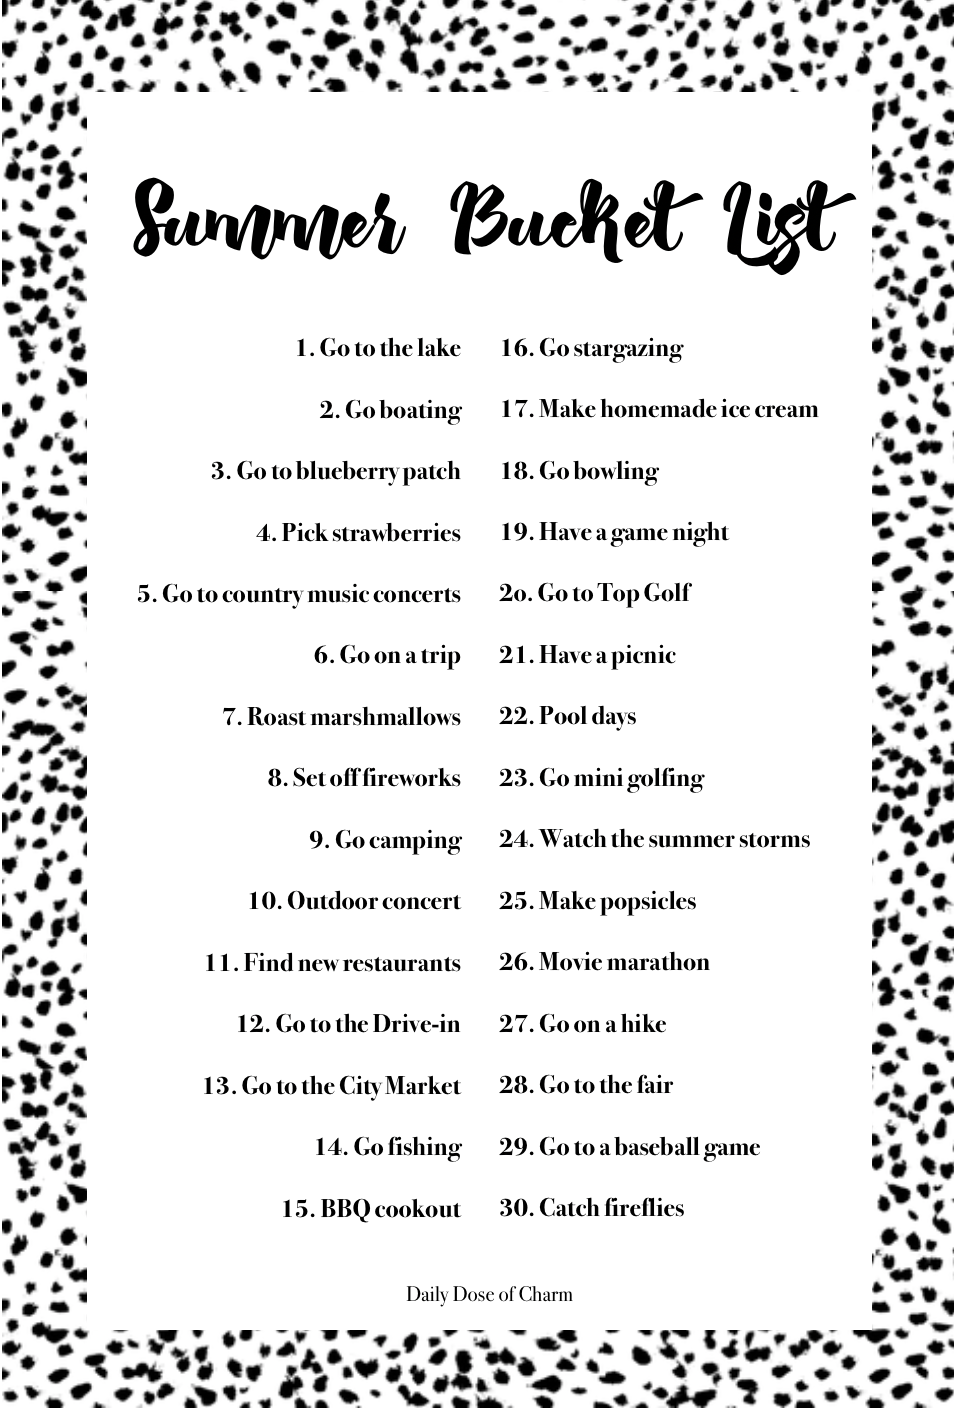 Summer bucket list summer activities summer ideas summer bucket list adults